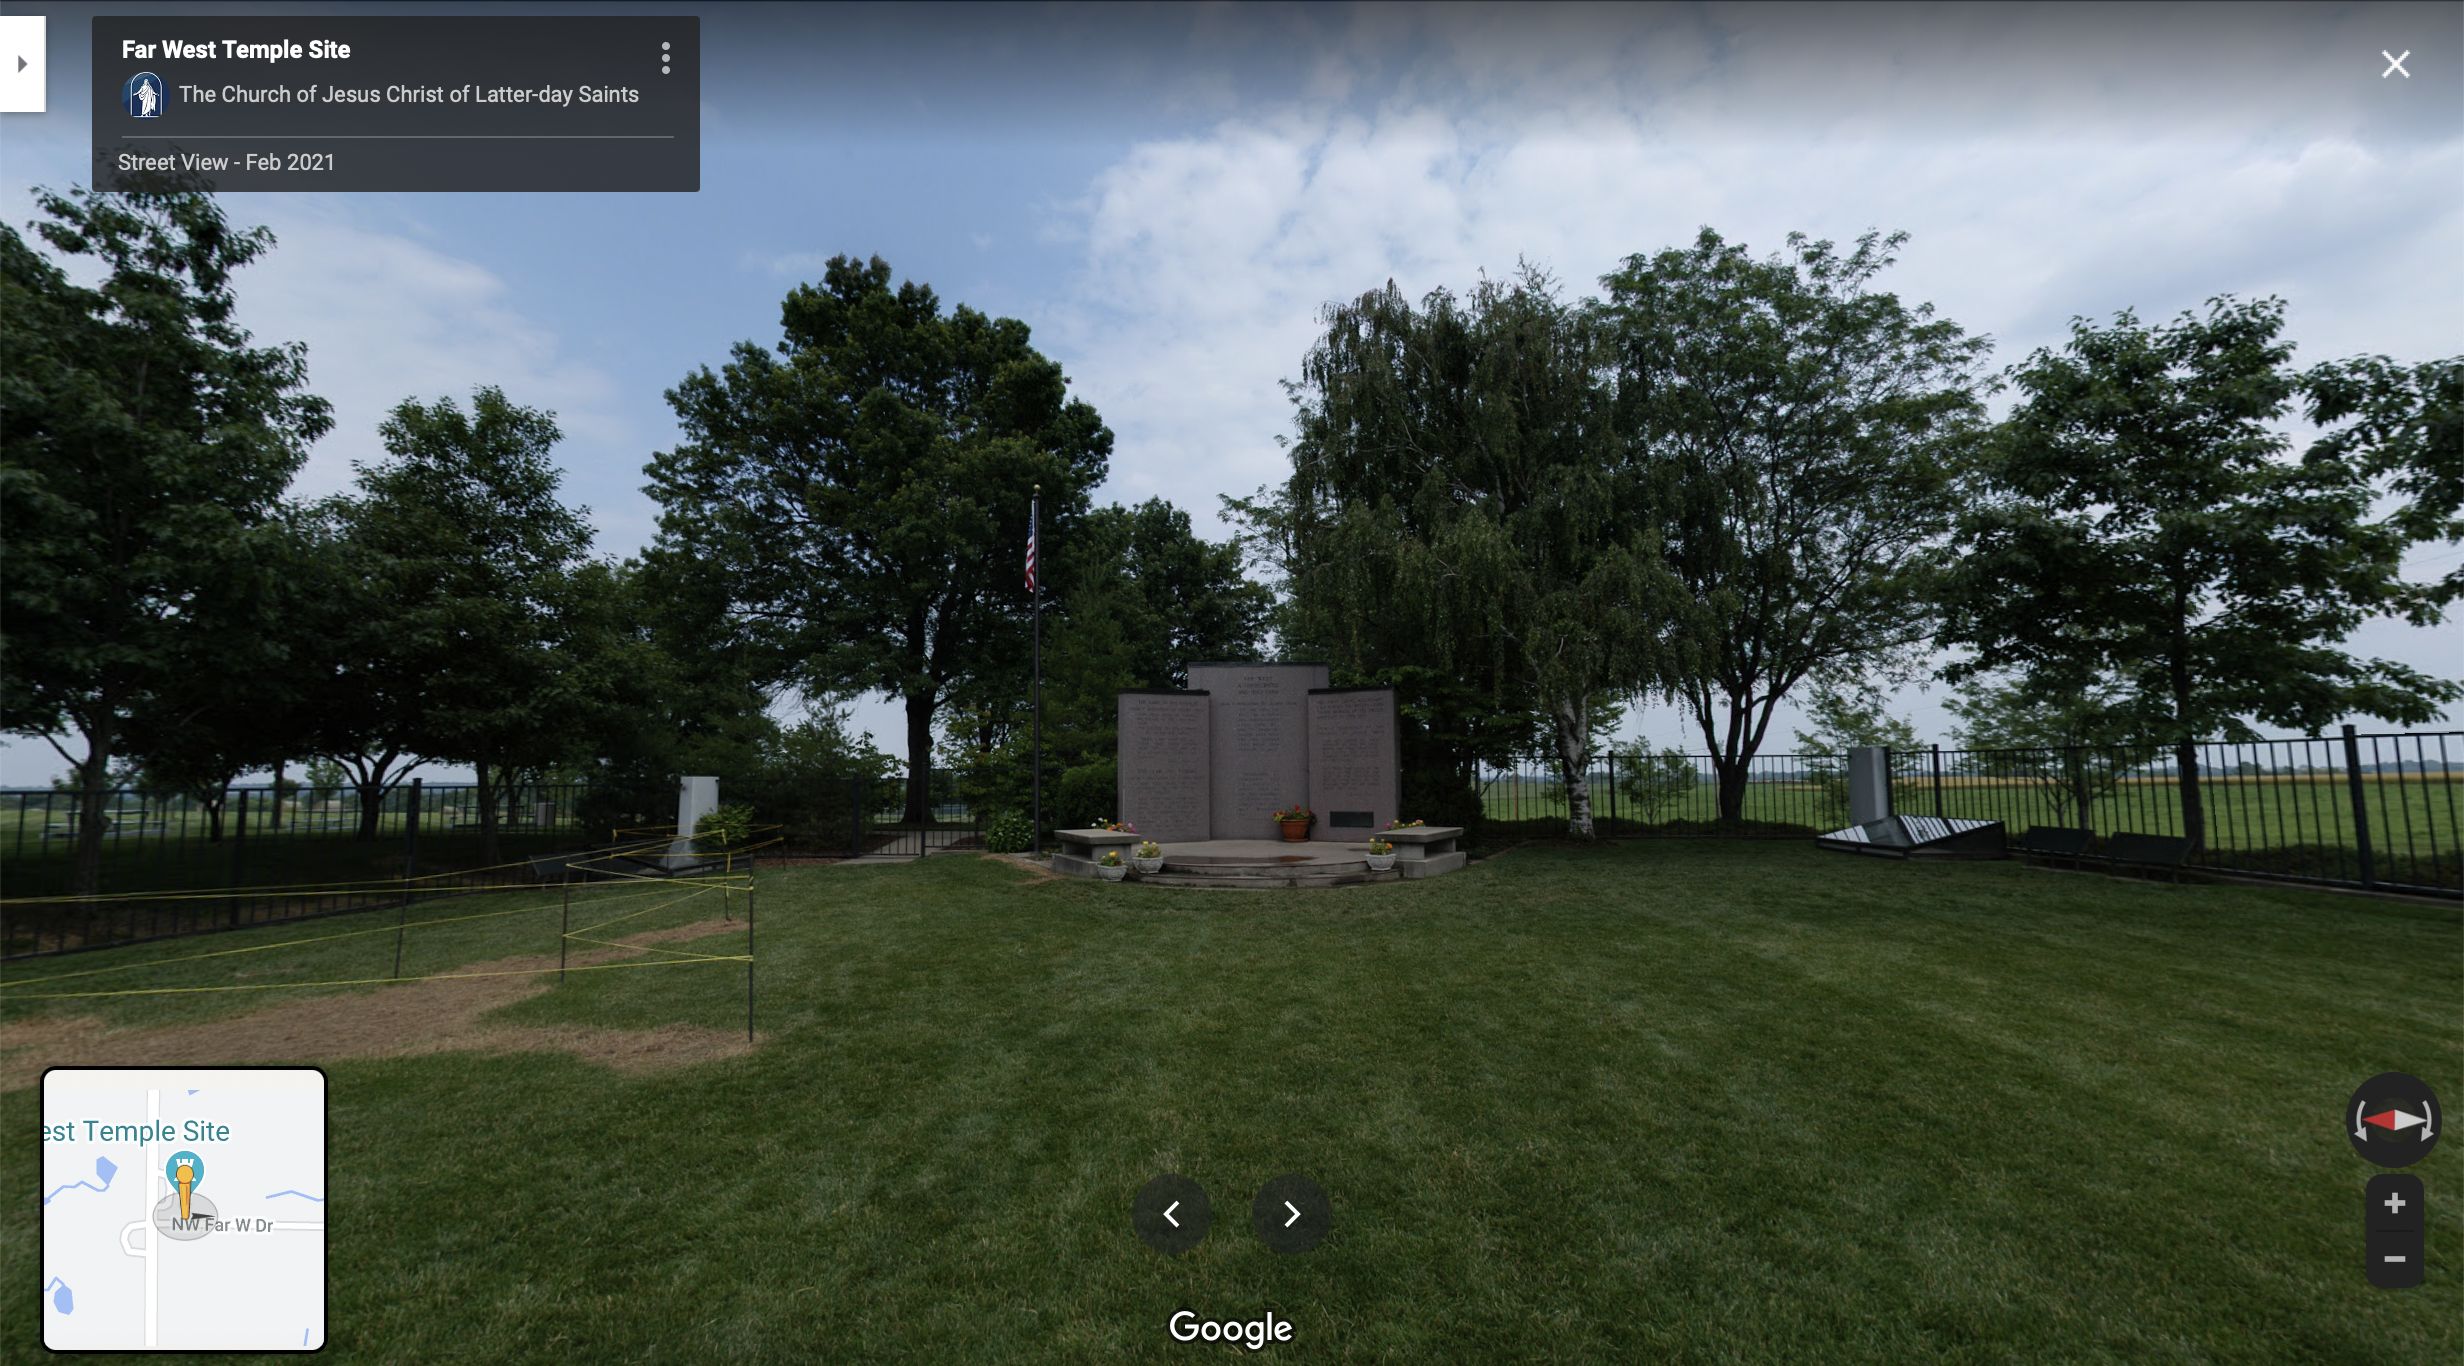 Screenshot of the Google Maps 360 view of the Far West Temple Site